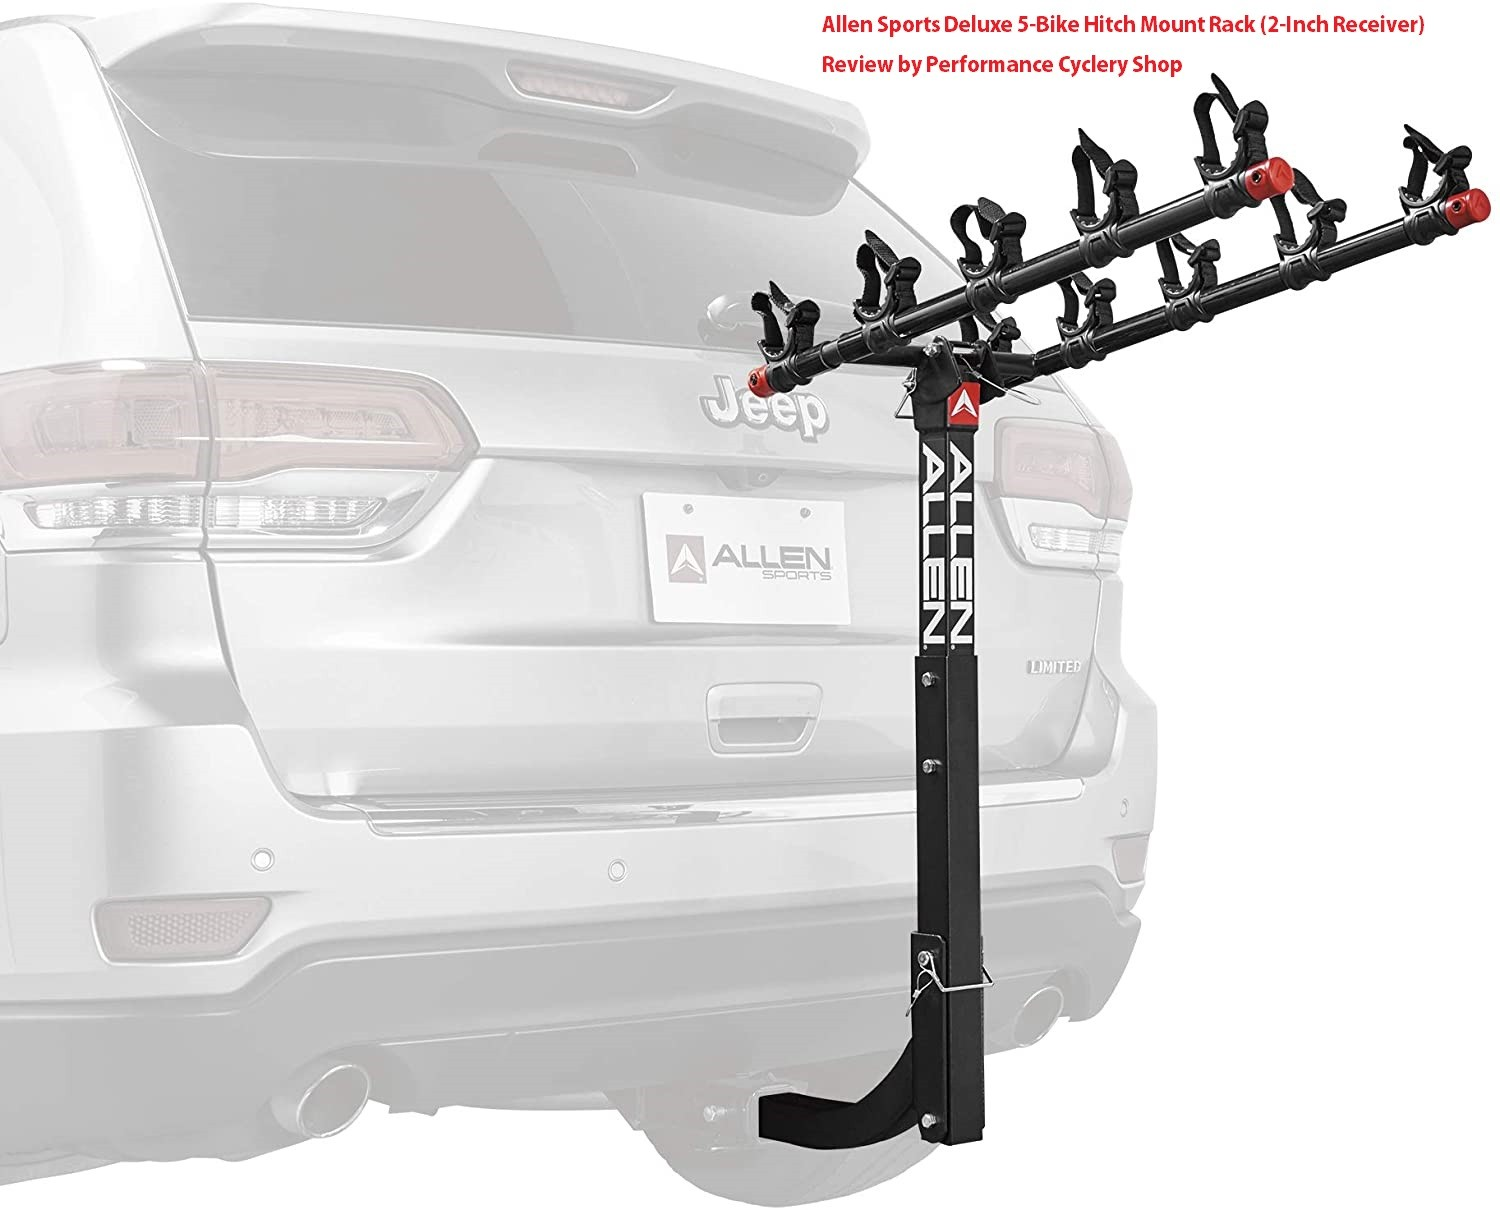 Allen Sports Deluxe 5 Bike Hitch Mount Rack 2 Inch Receiver Review by Performance Cyclery Shop - Allen Sports Deluxe 5-Bike Hitch Mount Rack (2-Inch Receiver) Review 2020